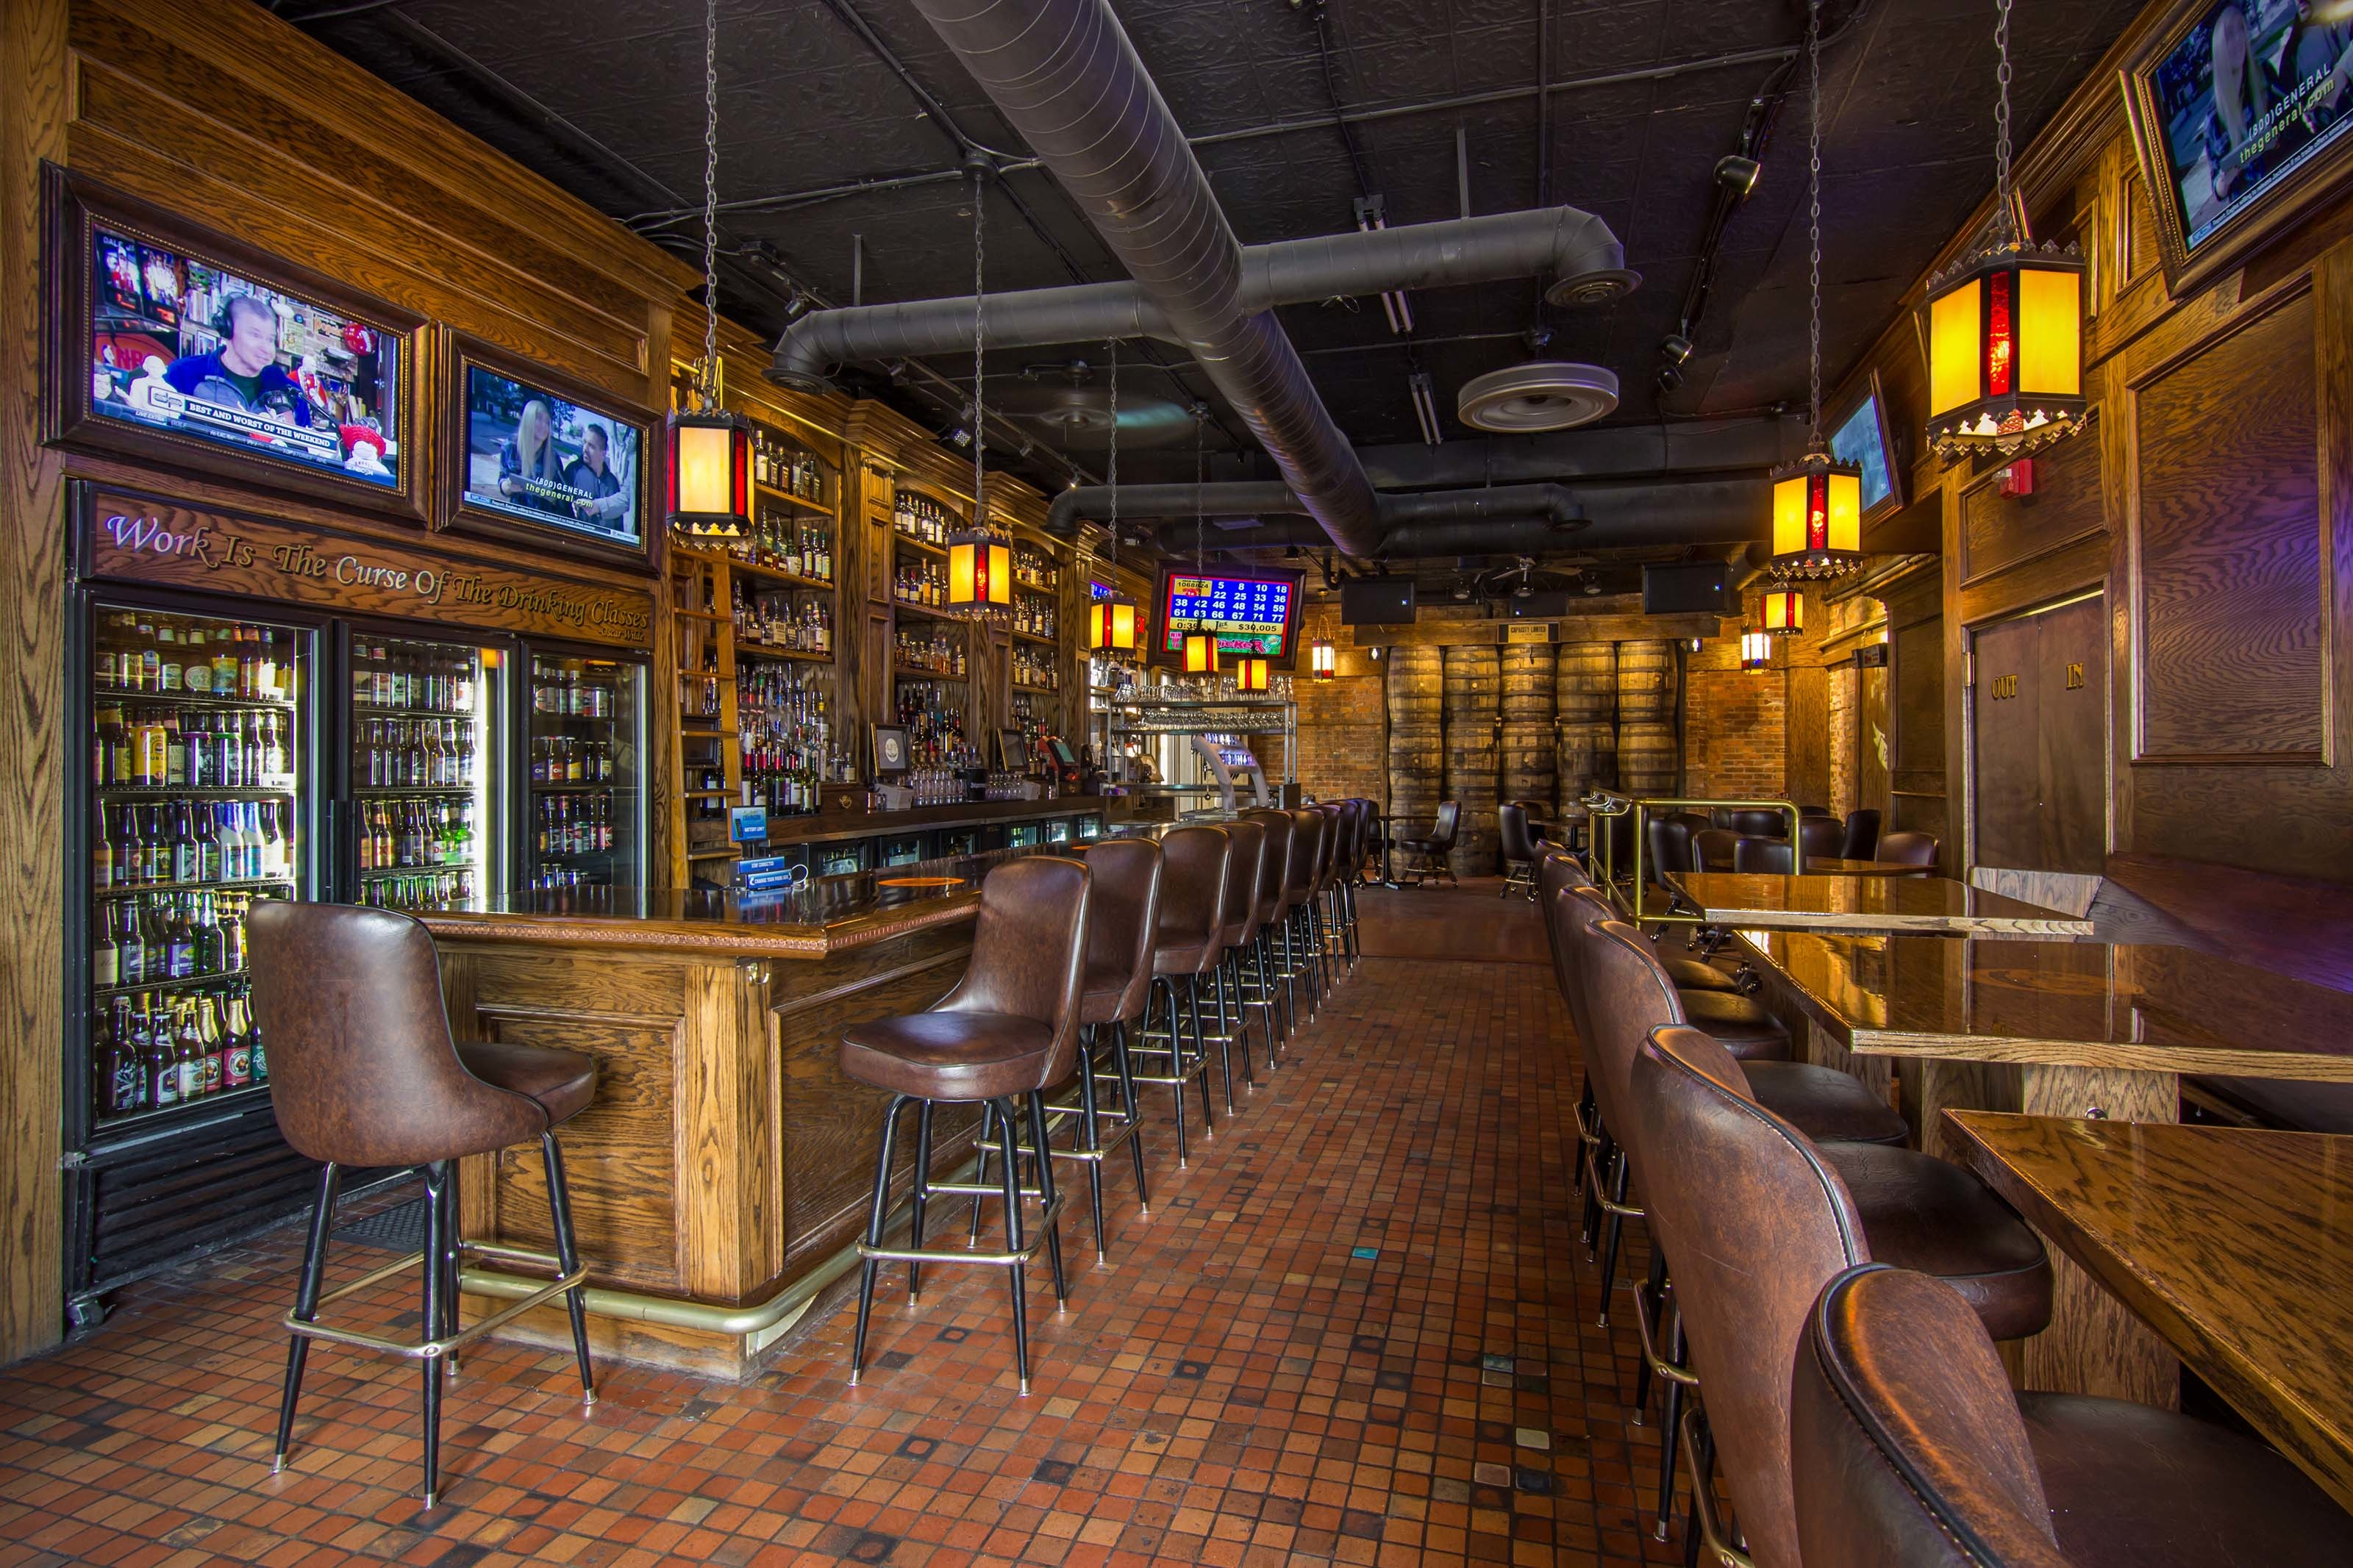 Three blind mice irish pub in mount clemens mi 48043 for Craft beer pubs near me